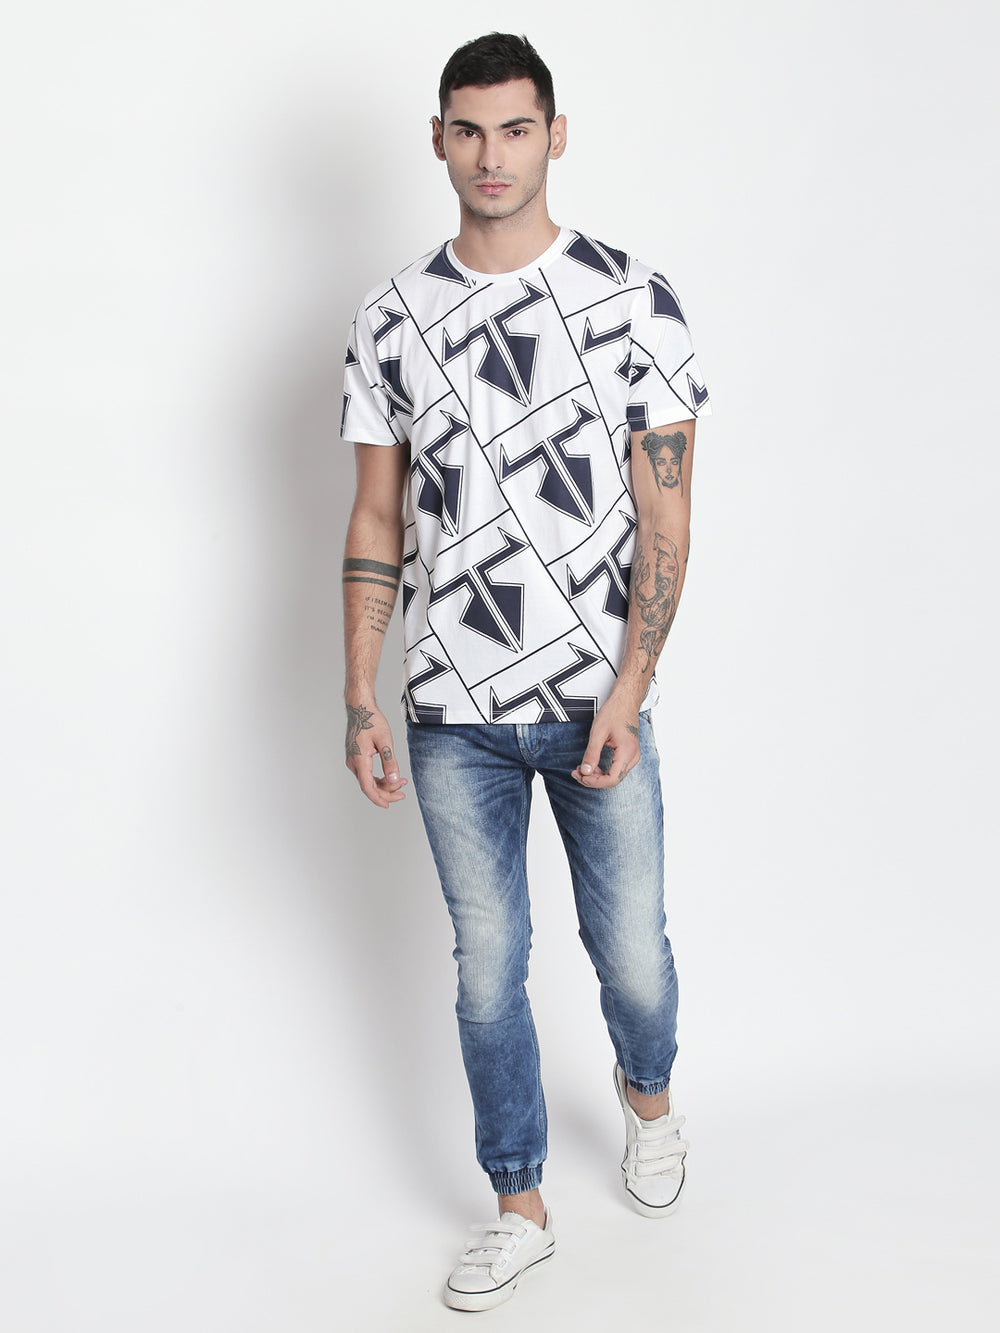 Disrupt White Round Neck Half Sleeve T-shirt For Men